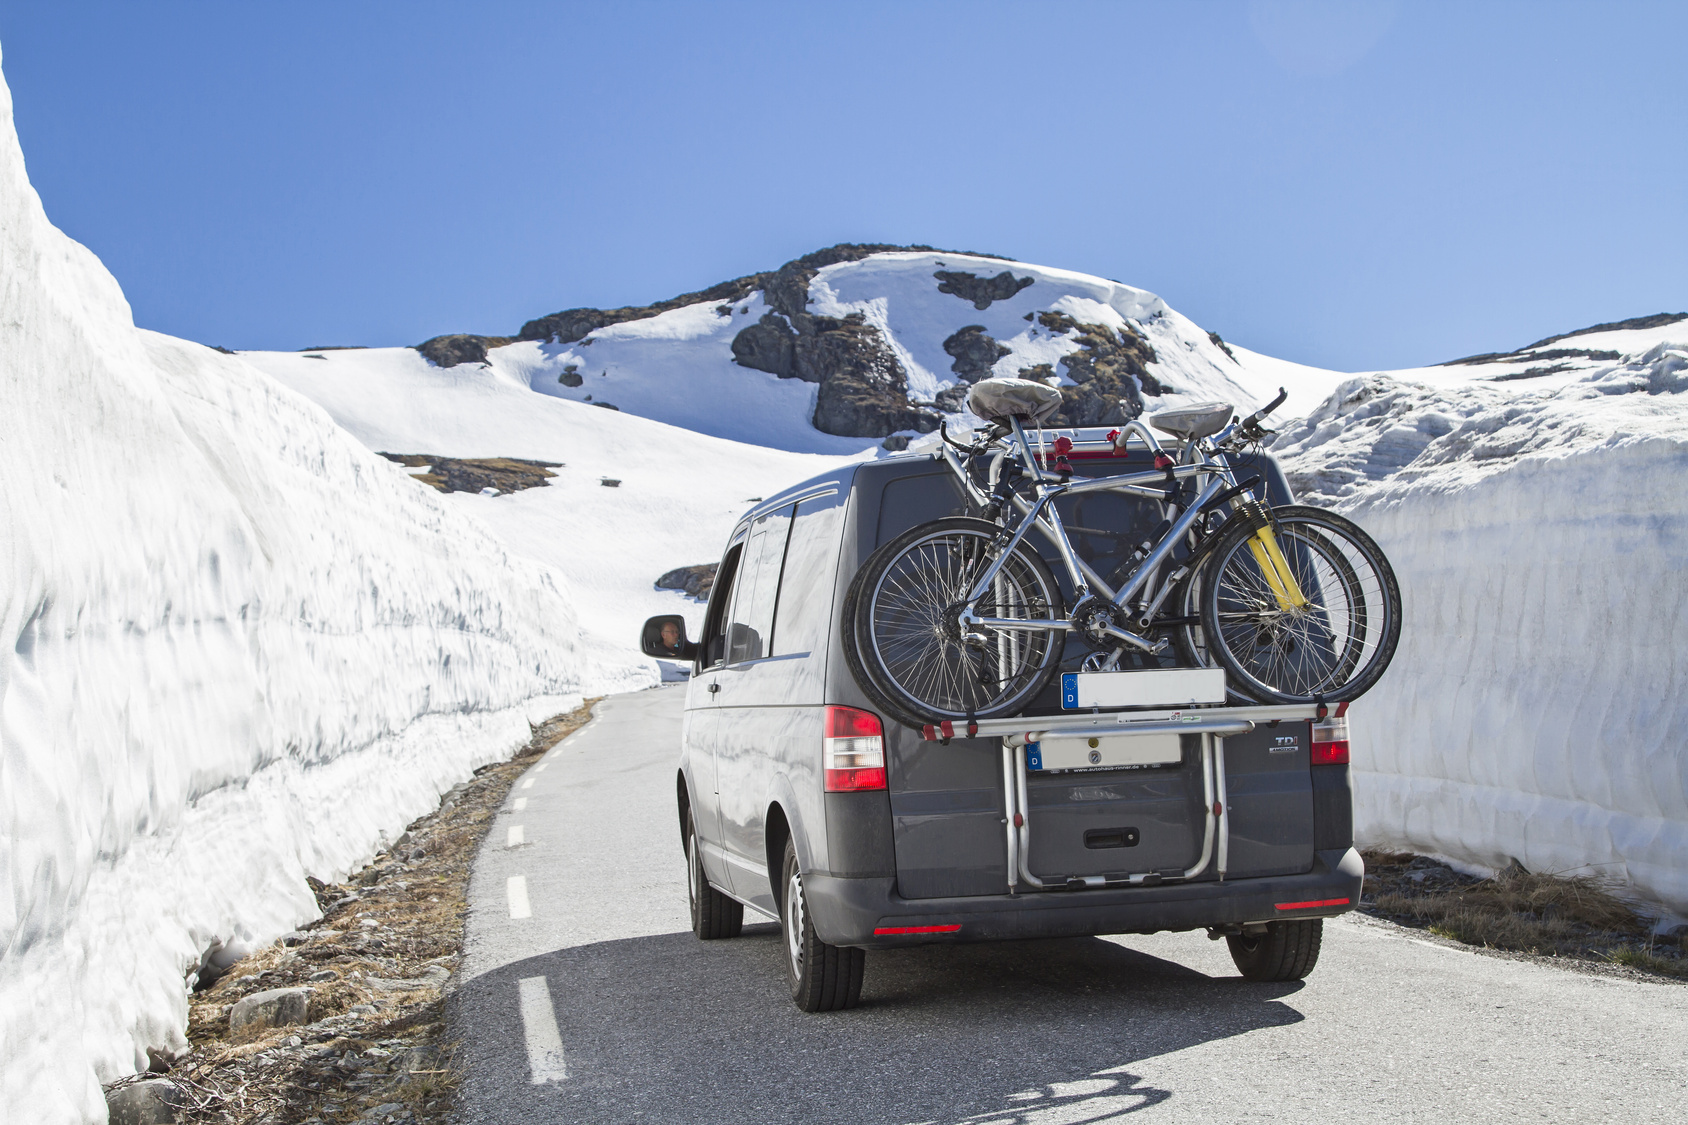 VW Transporter in the alps